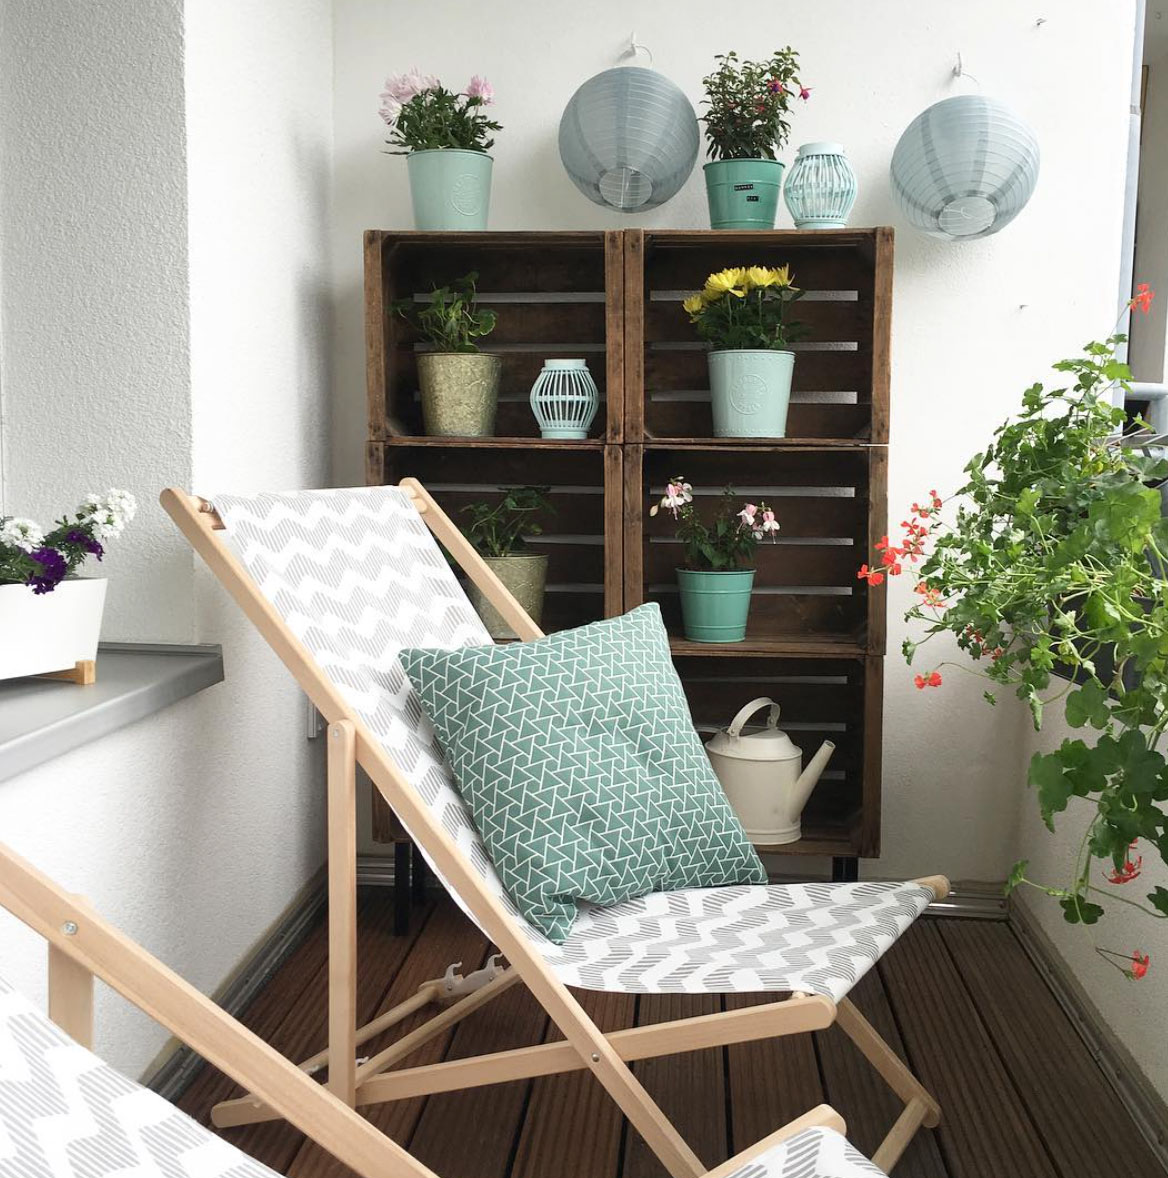 balkonboden gestalten awesome hngenden garten auf balkon gestalten kleingarten bunt grell with. Black Bedroom Furniture Sets. Home Design Ideas